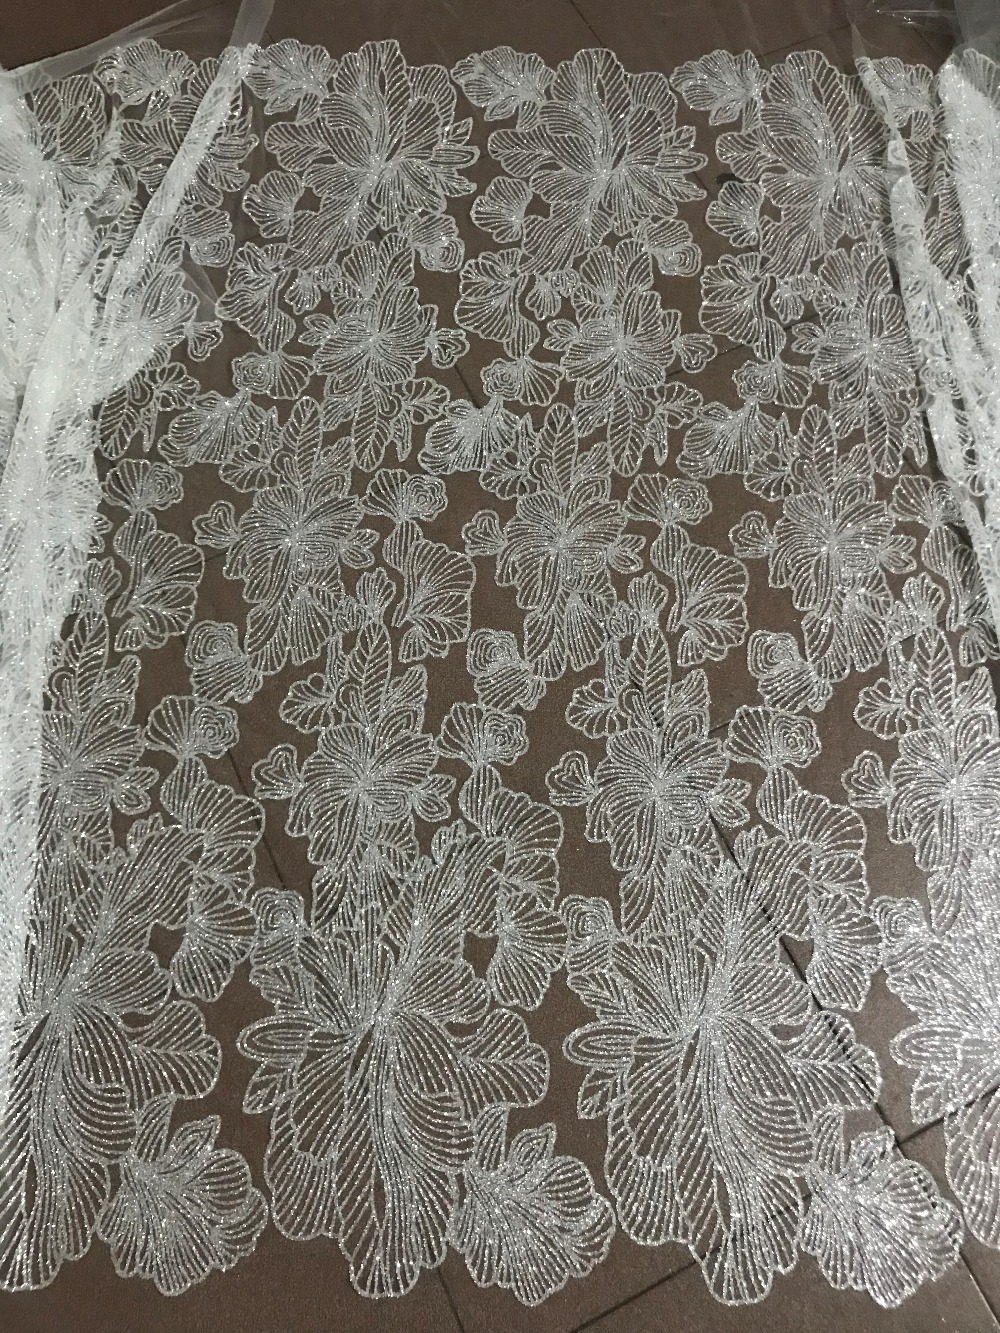 Hot selling Sat 10.2716 glued glitter sequins lace fabric African French net tulle Lace Fabric for party-in Lace from Home & Garden    1